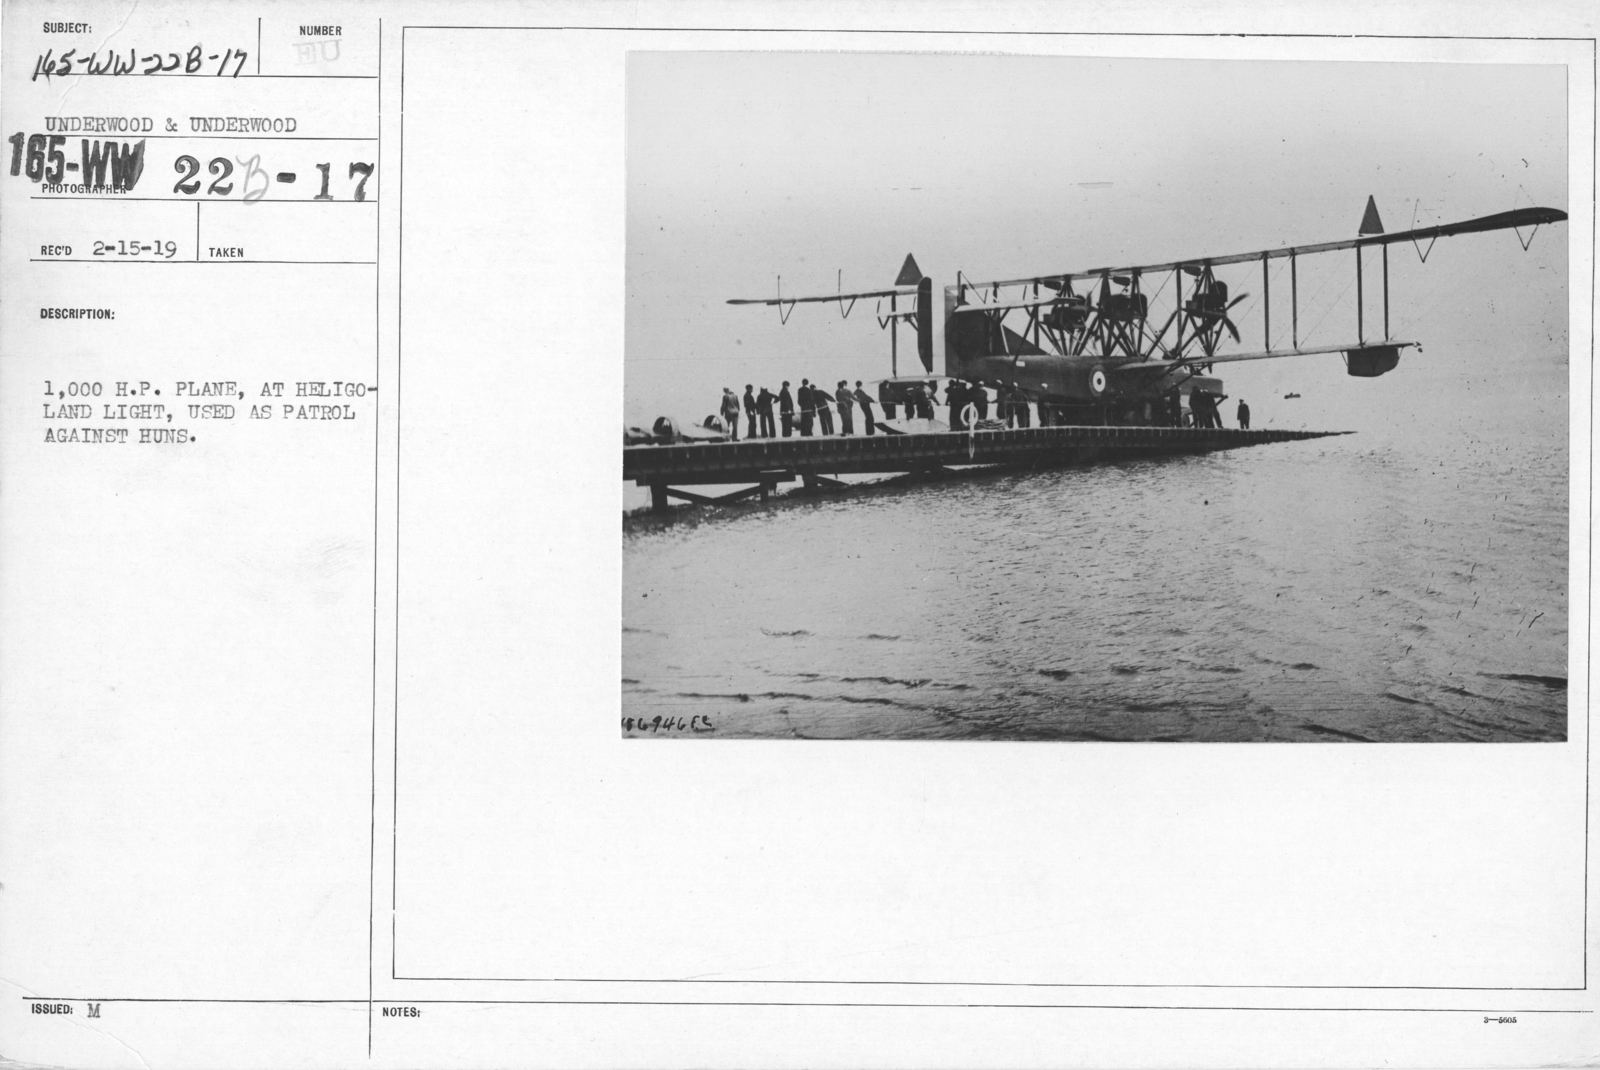 Airplanes - Types - 1,000 H.P. plane, at Helgoland light, used as patrol against Huns